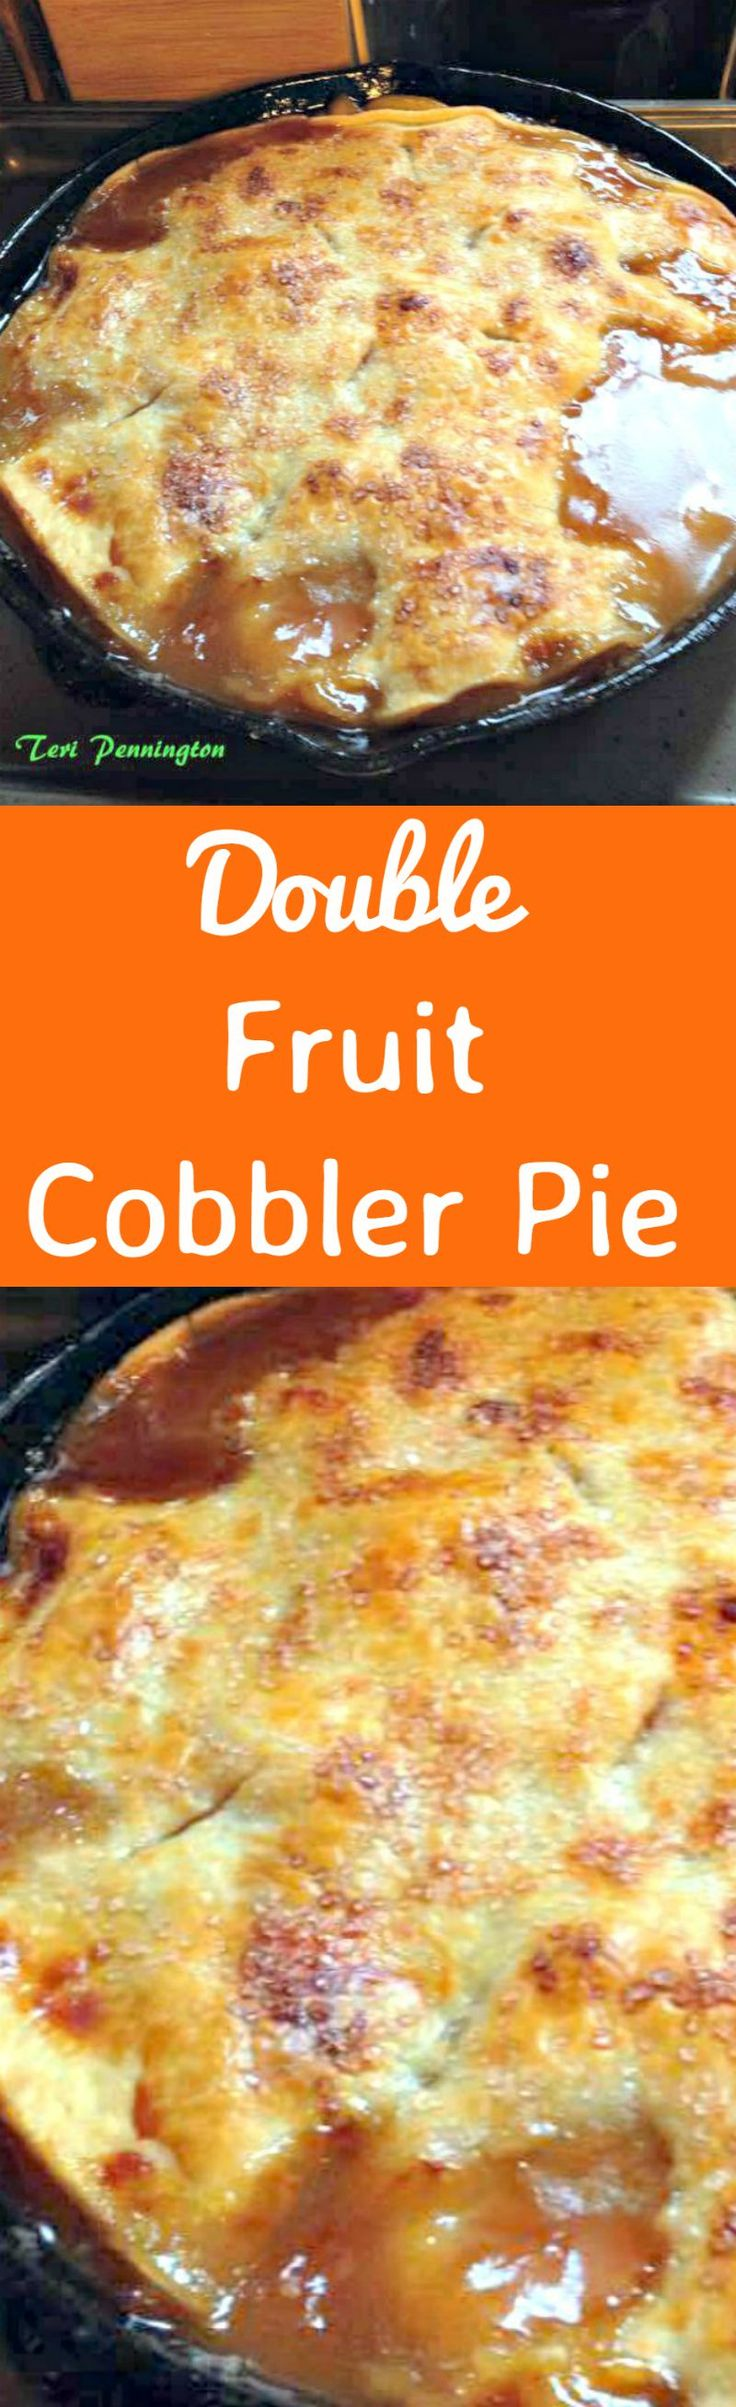 Double Fruit Cobbler Pie! This is one good tasting and easy cobbler and pie all in one! With double layers of fruit (peaches or you can swap) filling and pie crust, this dessert is always a pleaser. Serve warm with ice cream and please enjoy!